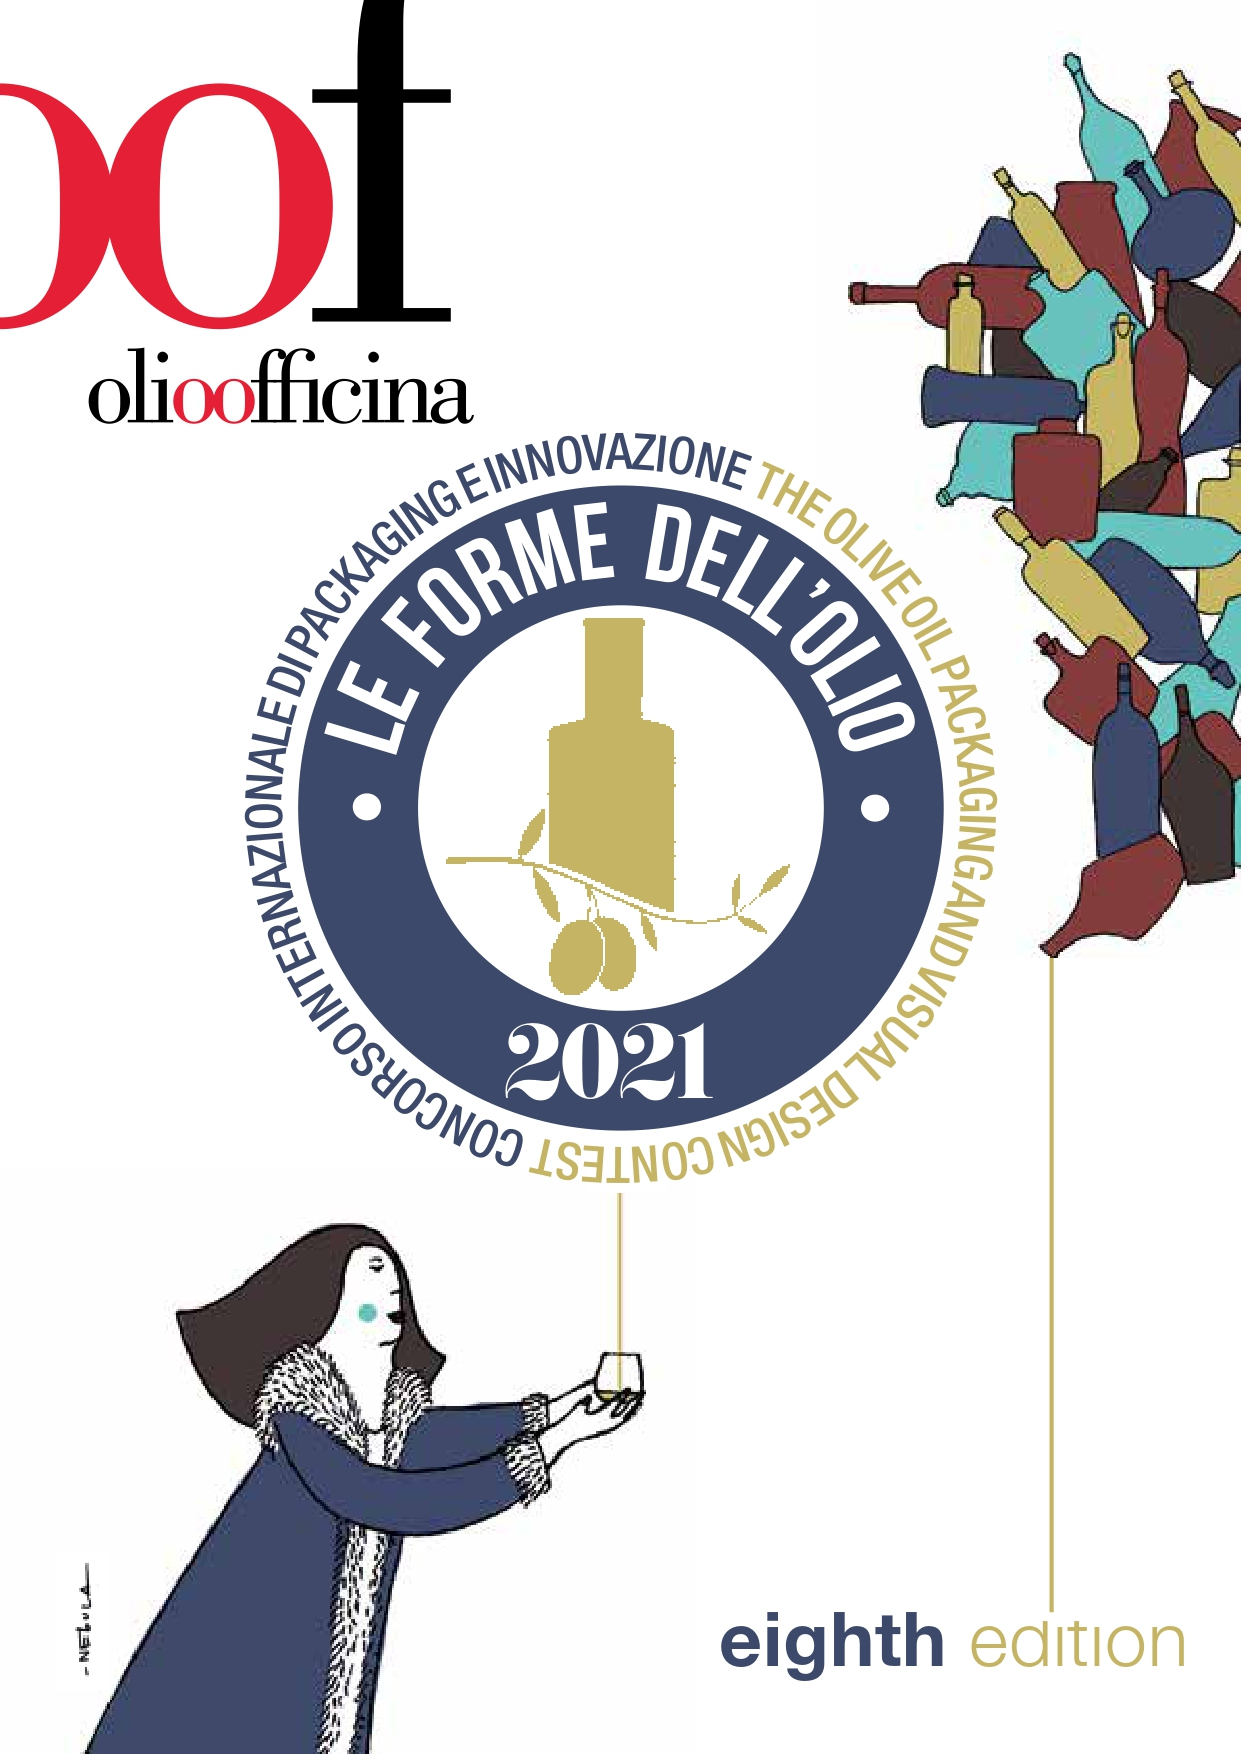 Deadline for registration and delivery of your olive oil and vinegar samples for the Le Forme dell'Olio and Le Forme dell'Aceto competition has been extended until 11 December